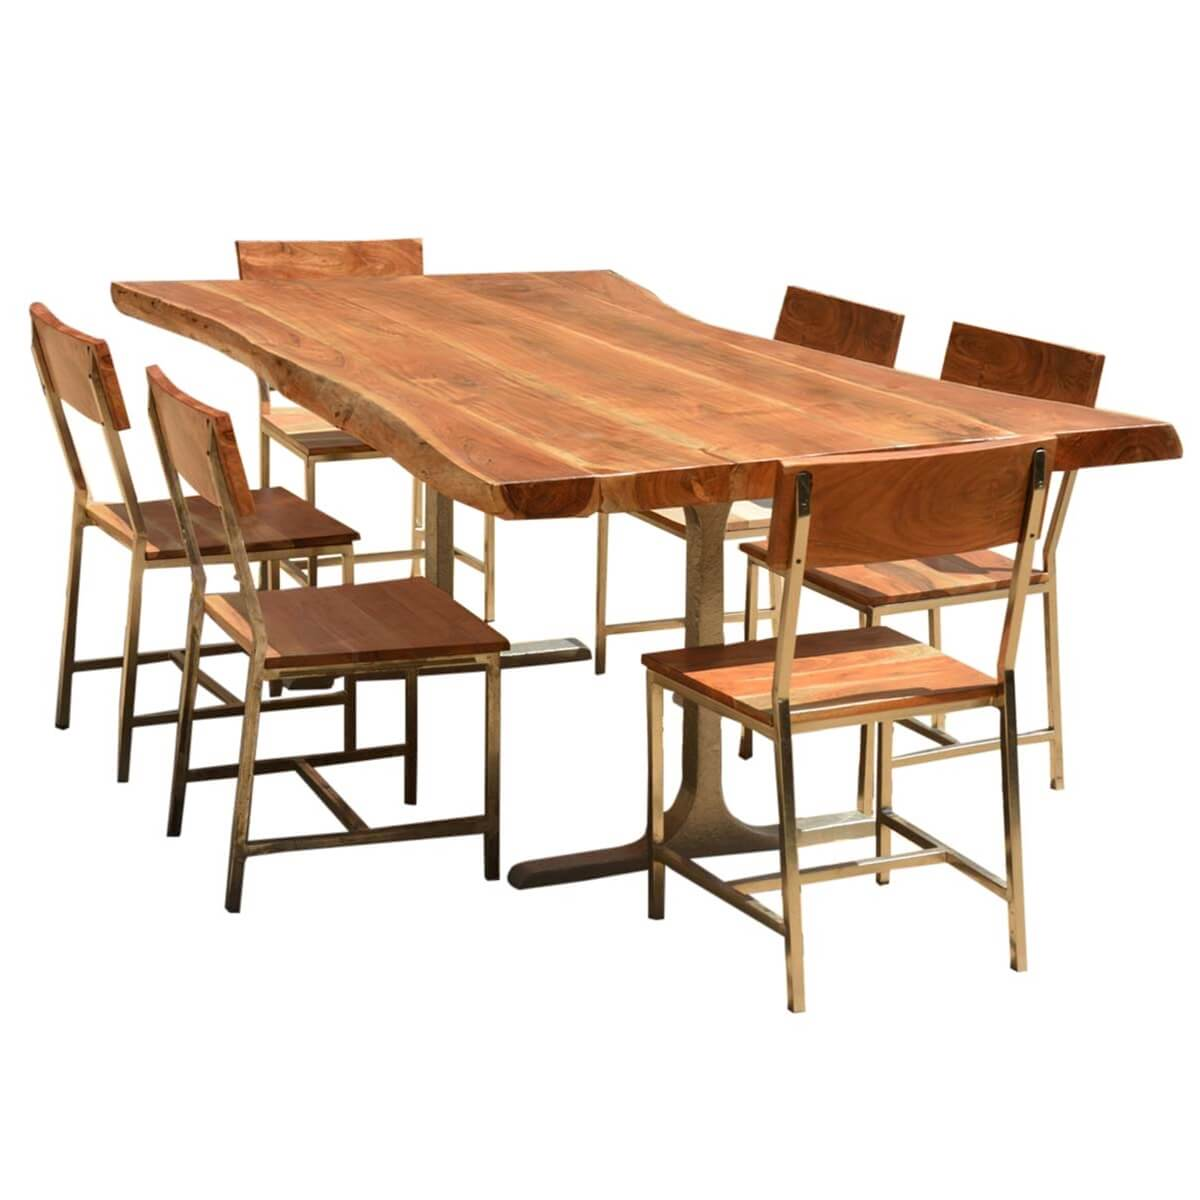 Sierra Solid Wood Rustic Live Edge Dining Table Amp Chairs Set